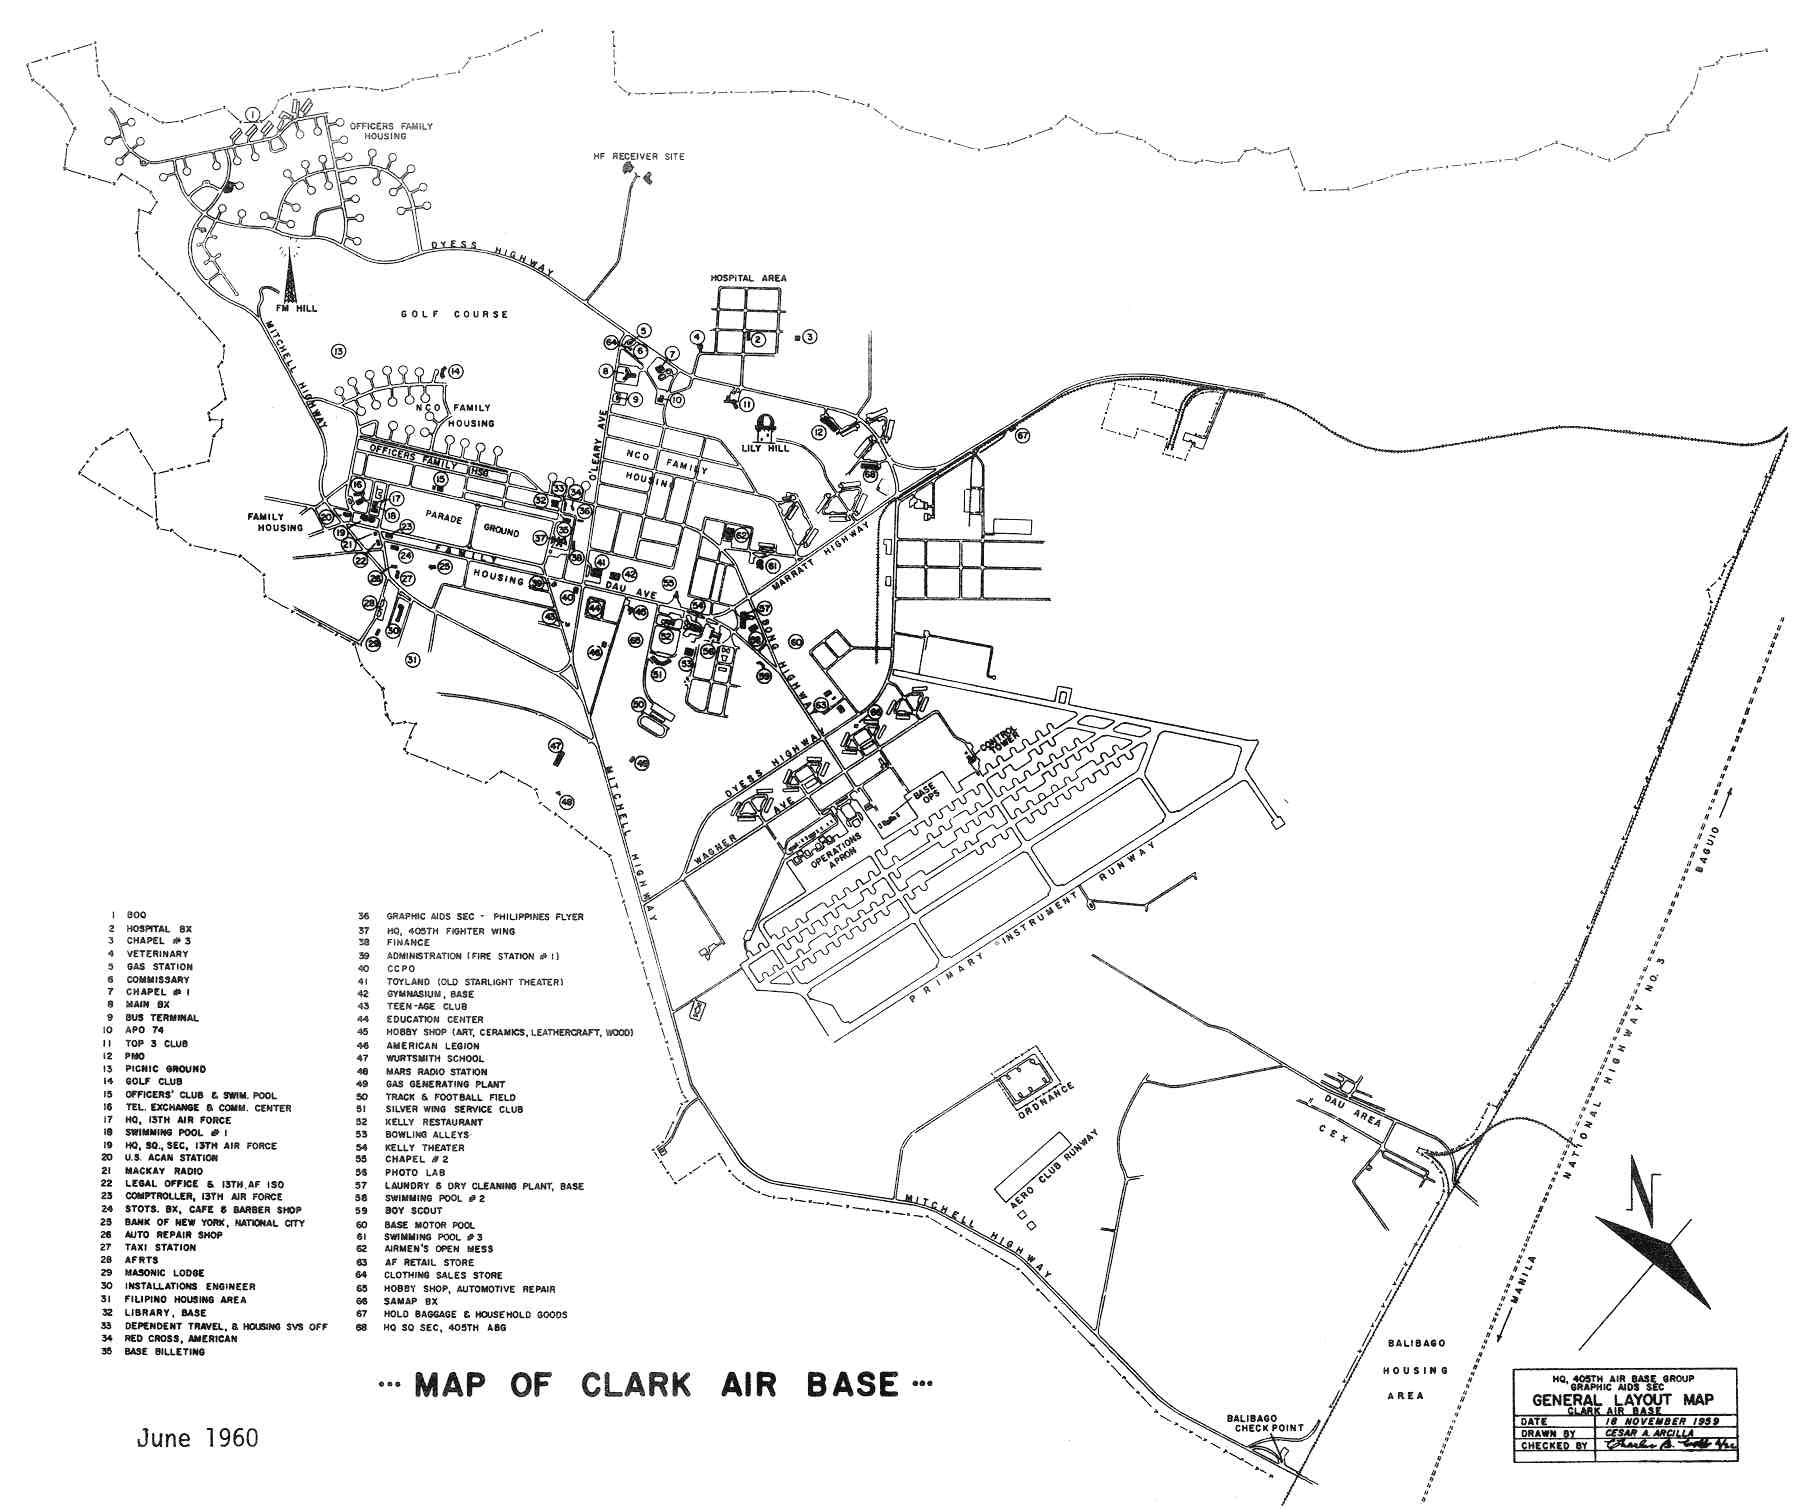 Philippines Clark Air Base Maps Charts And Blueprints - Us Air Force Bases In Japan Map